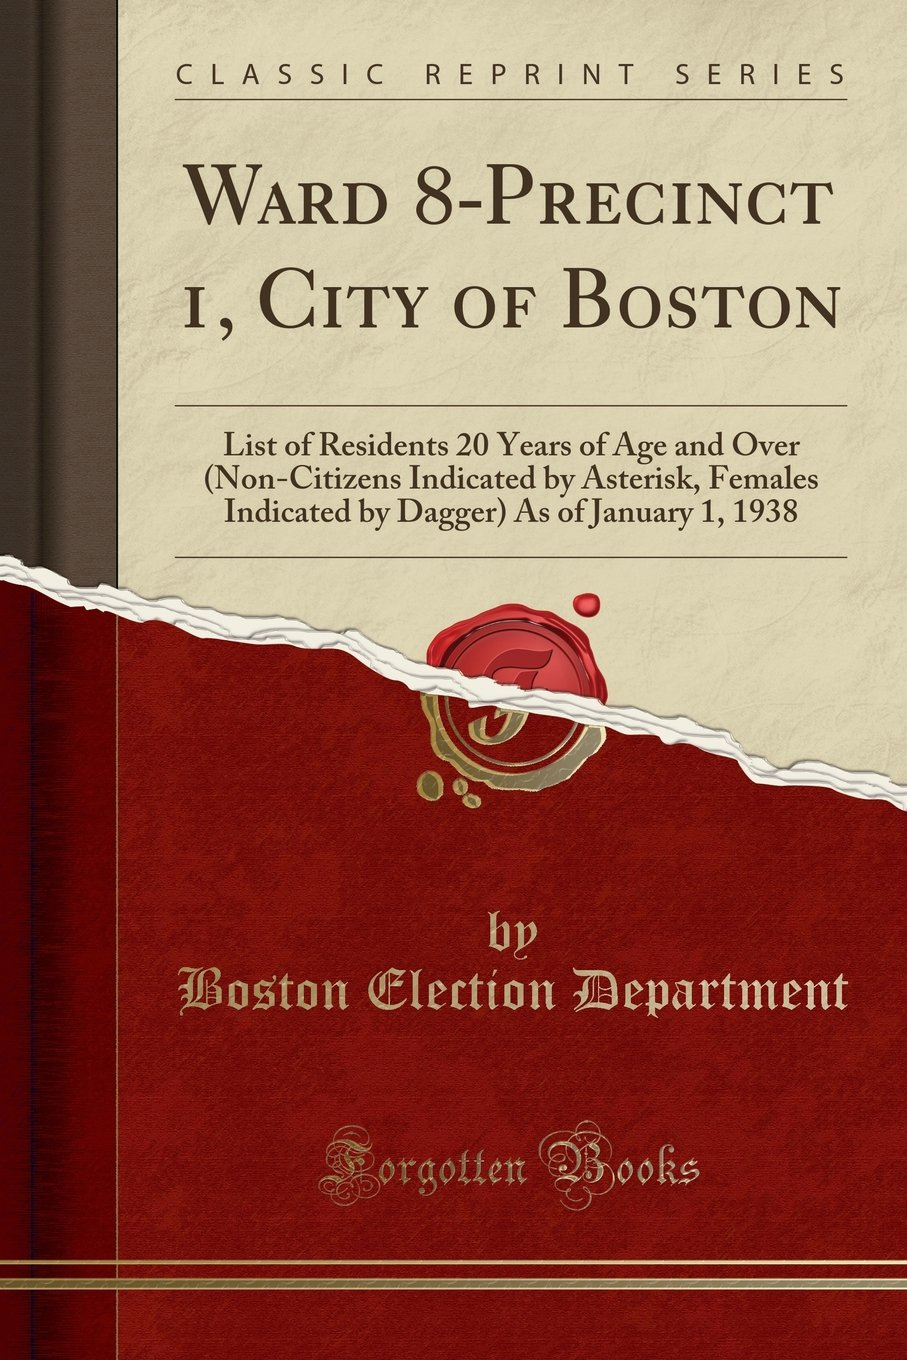 Read Online Ward 8-Precinct 1, City of Boston: List of Residents 20 Years of Age and Over (Non-Citizens Indicated by Asterisk, Females Indicated by Dagger) As of January 1, 1938 (Classic Reprint) ebook